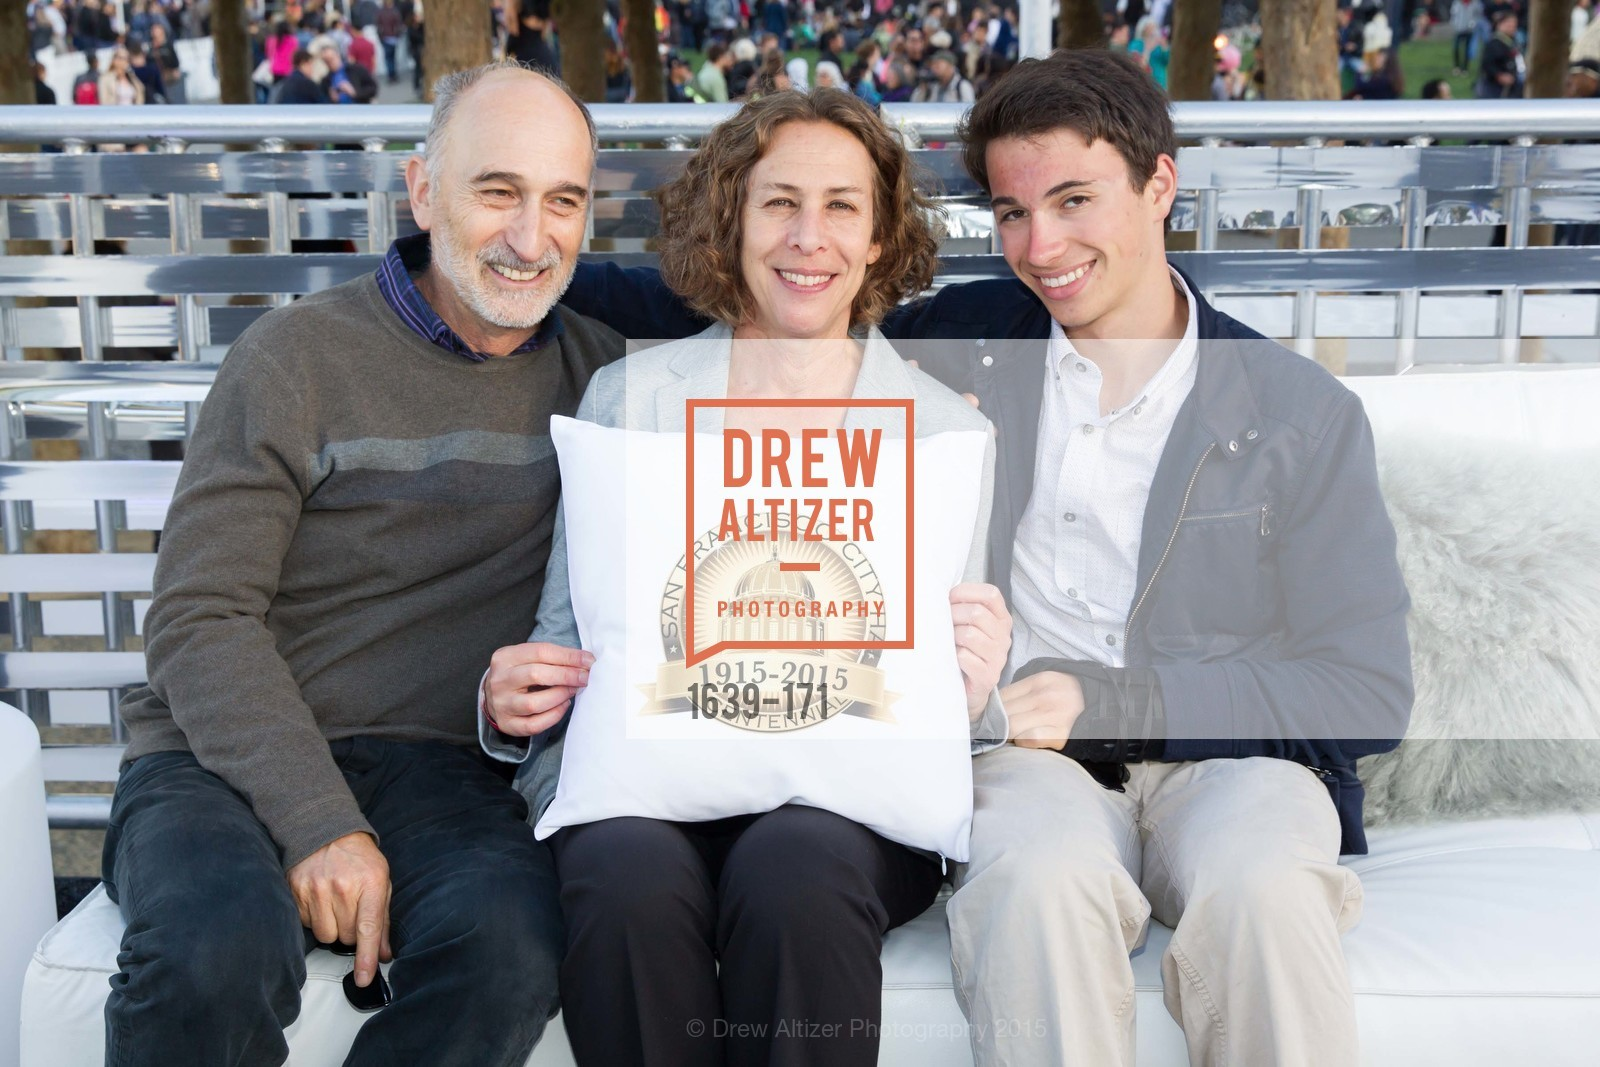 Andy Kivel, Susan Goldstein, Daniel Kivel-Goldstein, San Francisco City Hall Centennial Celebration, Civic Center Plaza, June 18th, 2015,Drew Altizer, Drew Altizer Photography, full-service agency, private events, San Francisco photographer, photographer california